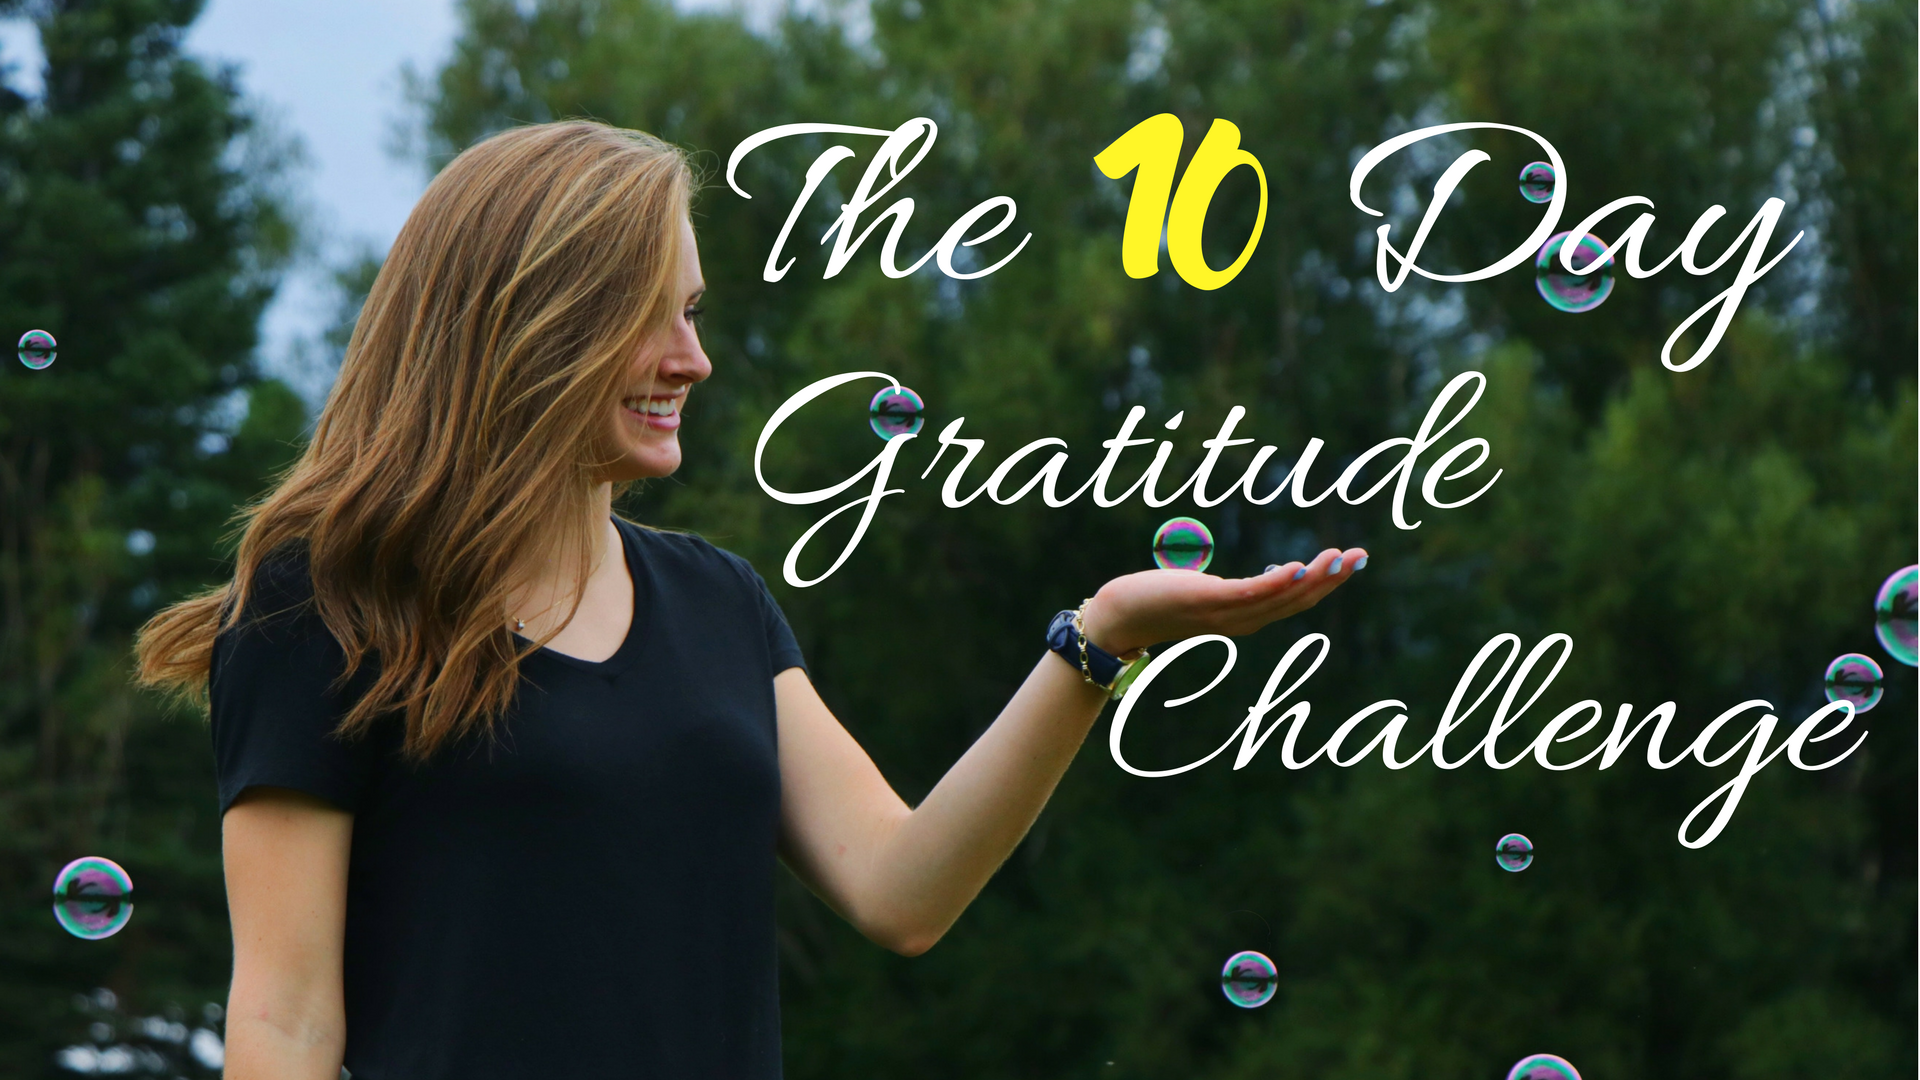 The 10 Days to Gratitude Challenge